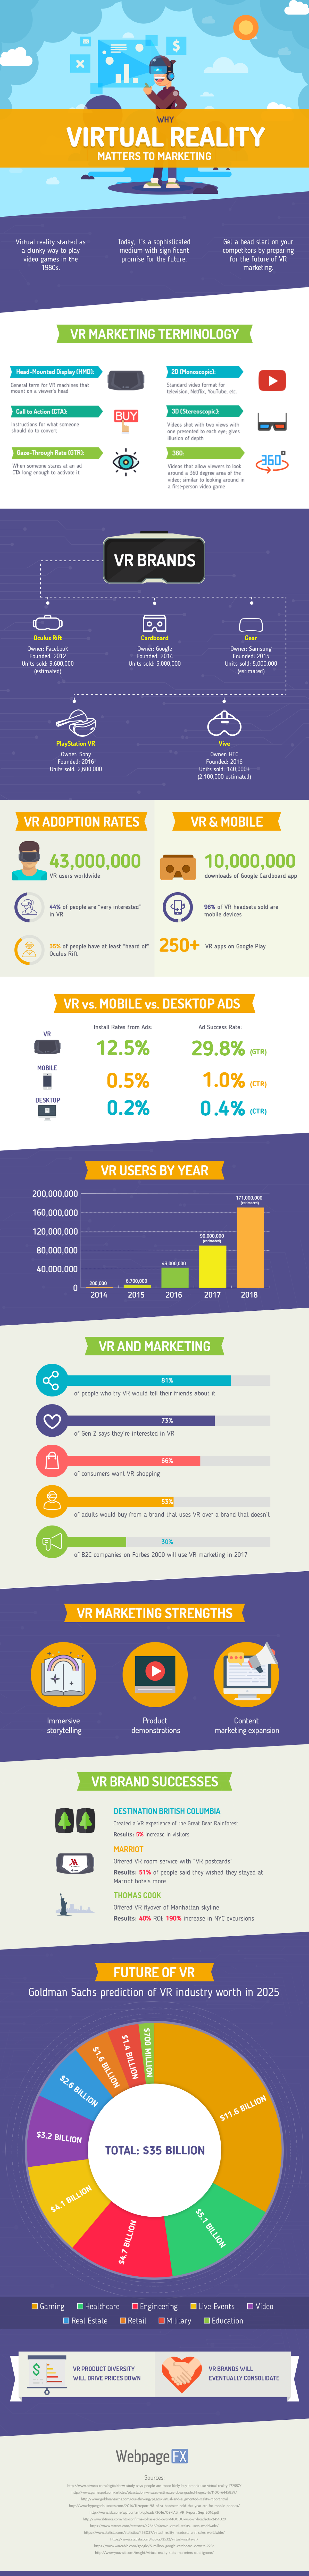 Infographic – Why Virtual Reality Matters